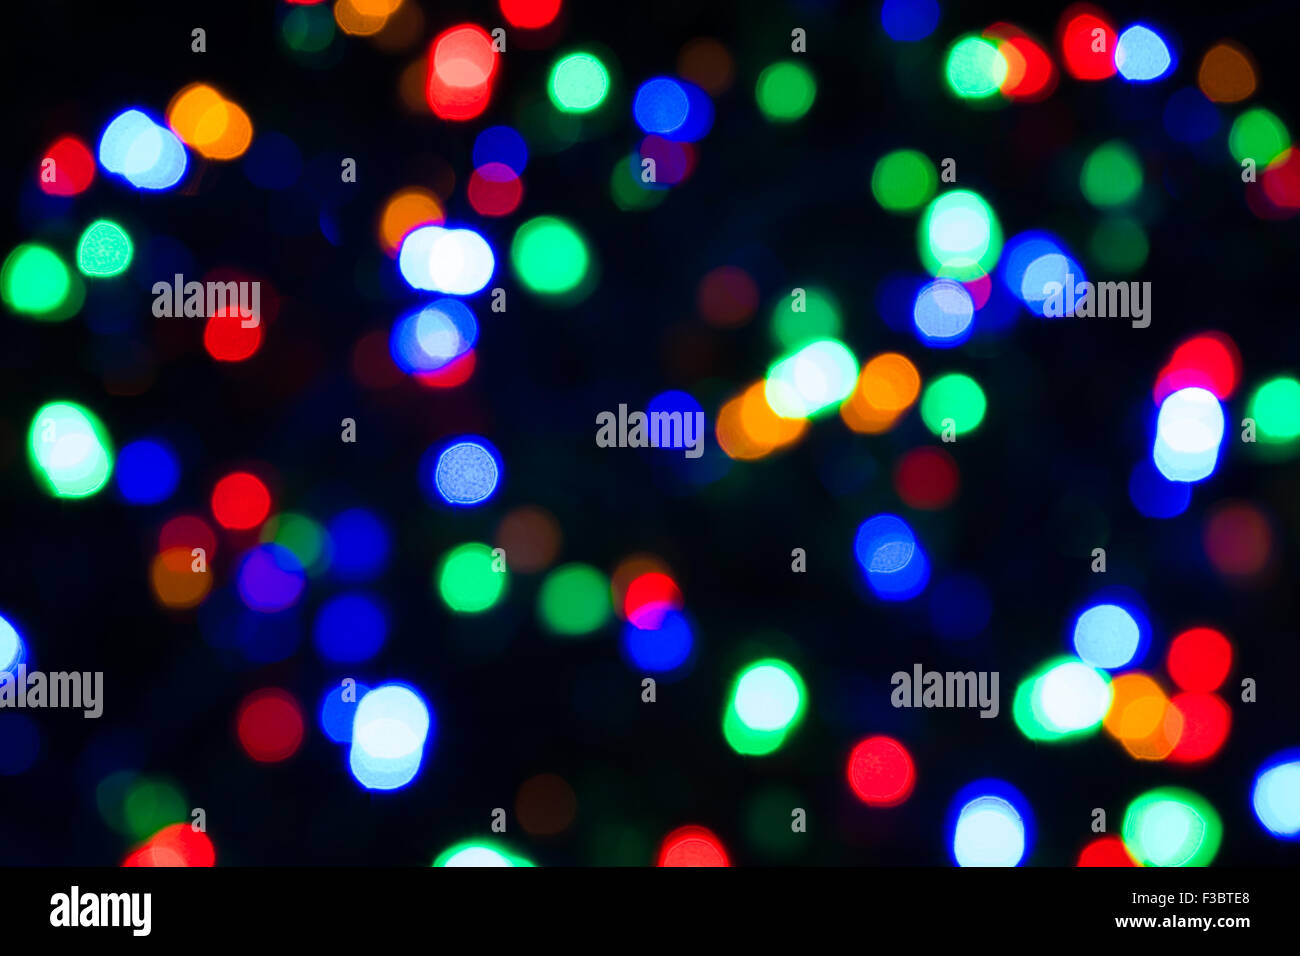 Abstract blurred effect Illuminated closeup of tangled Christmas lights - Stock Image